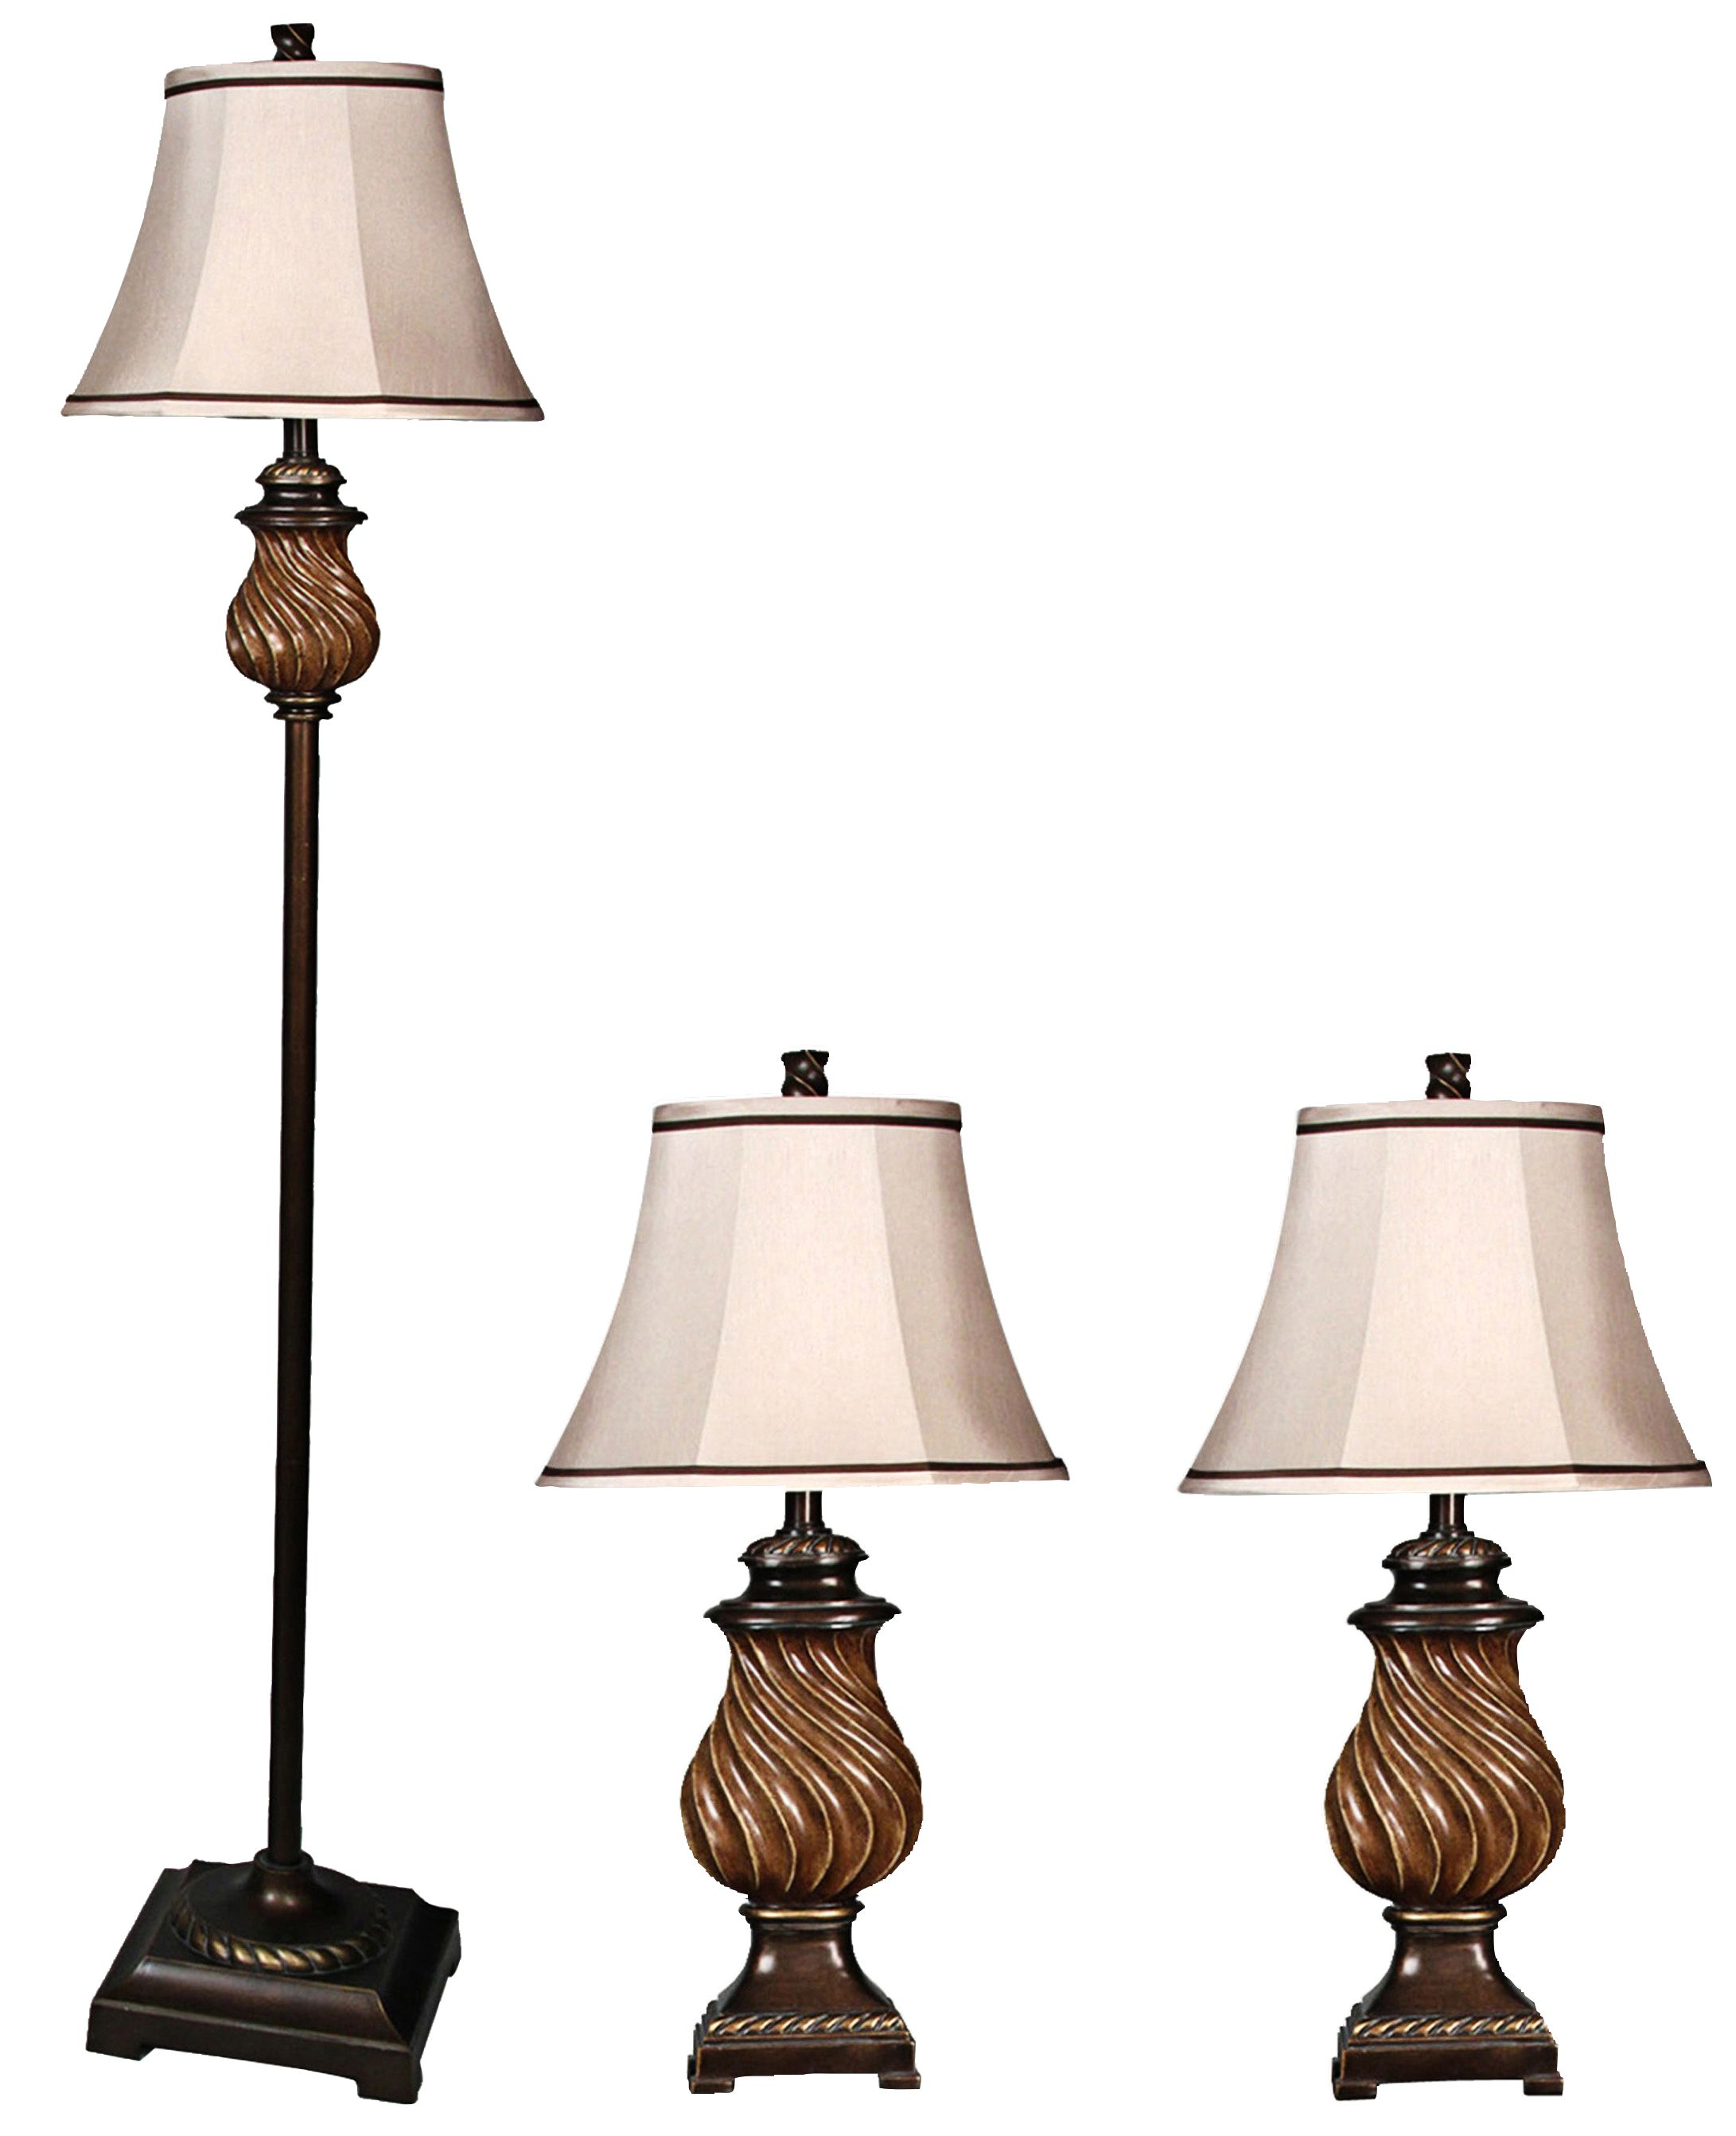 Delightful Toffee Wood 3 Piece Table Lamps And Floor Lamp Set